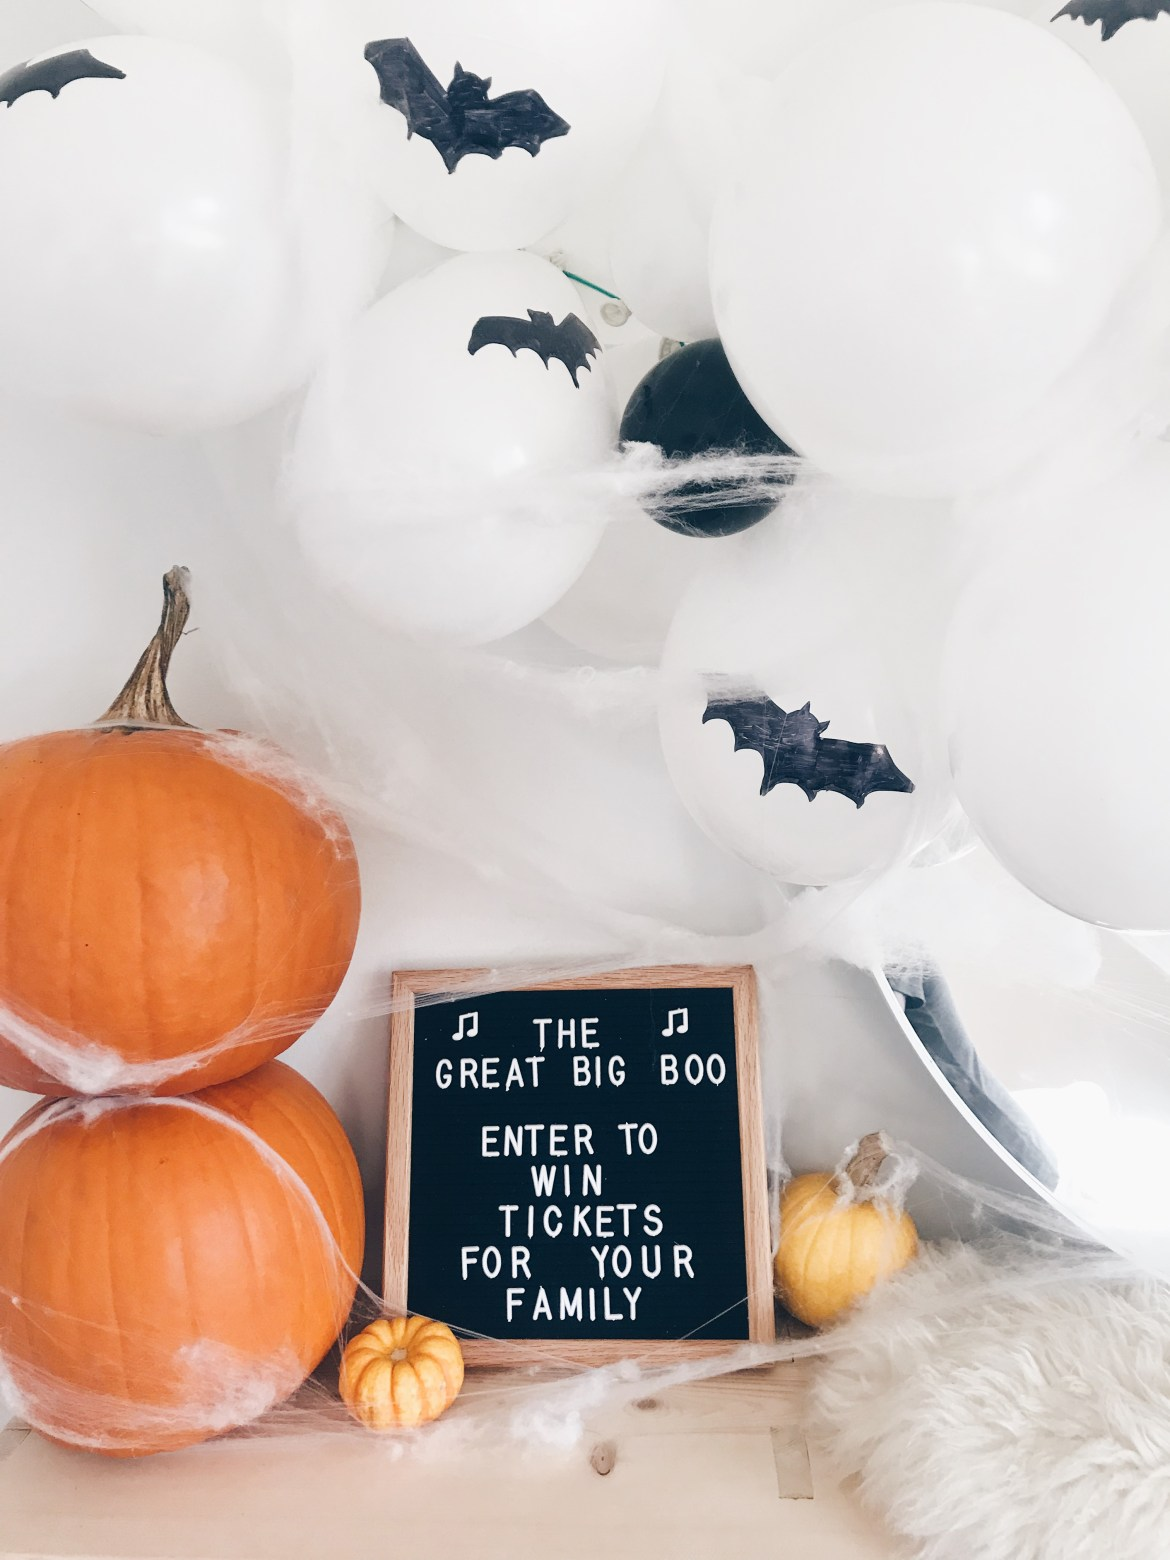 The Great Big Boo Family Entertainment | Enter to win a family pack of tickets